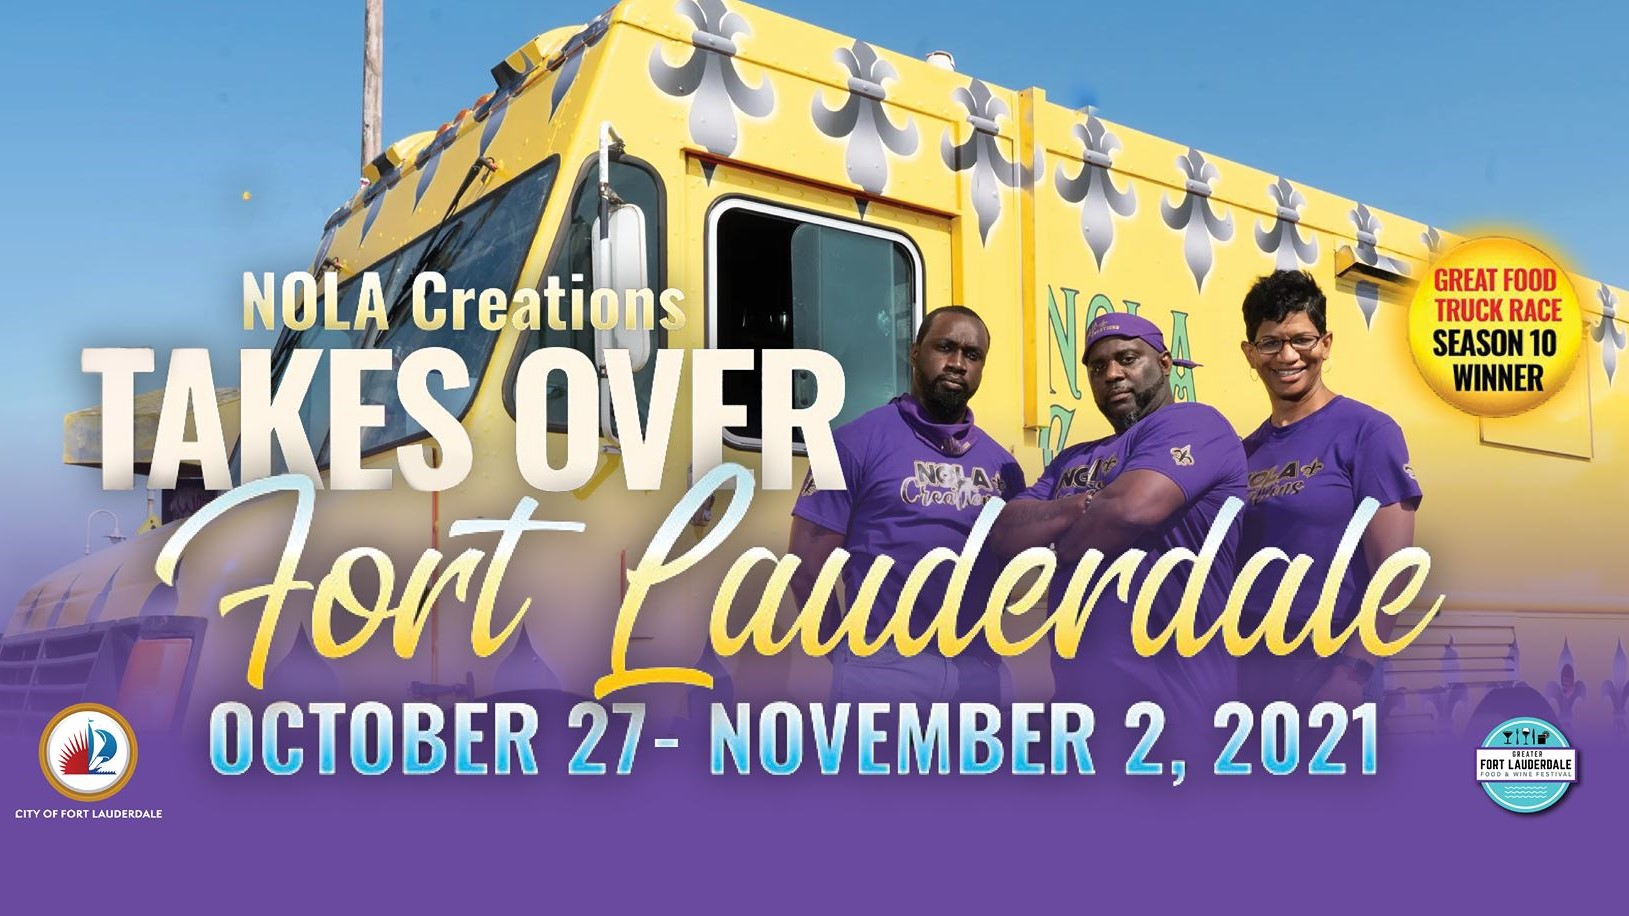 NOLA Creations Takeover